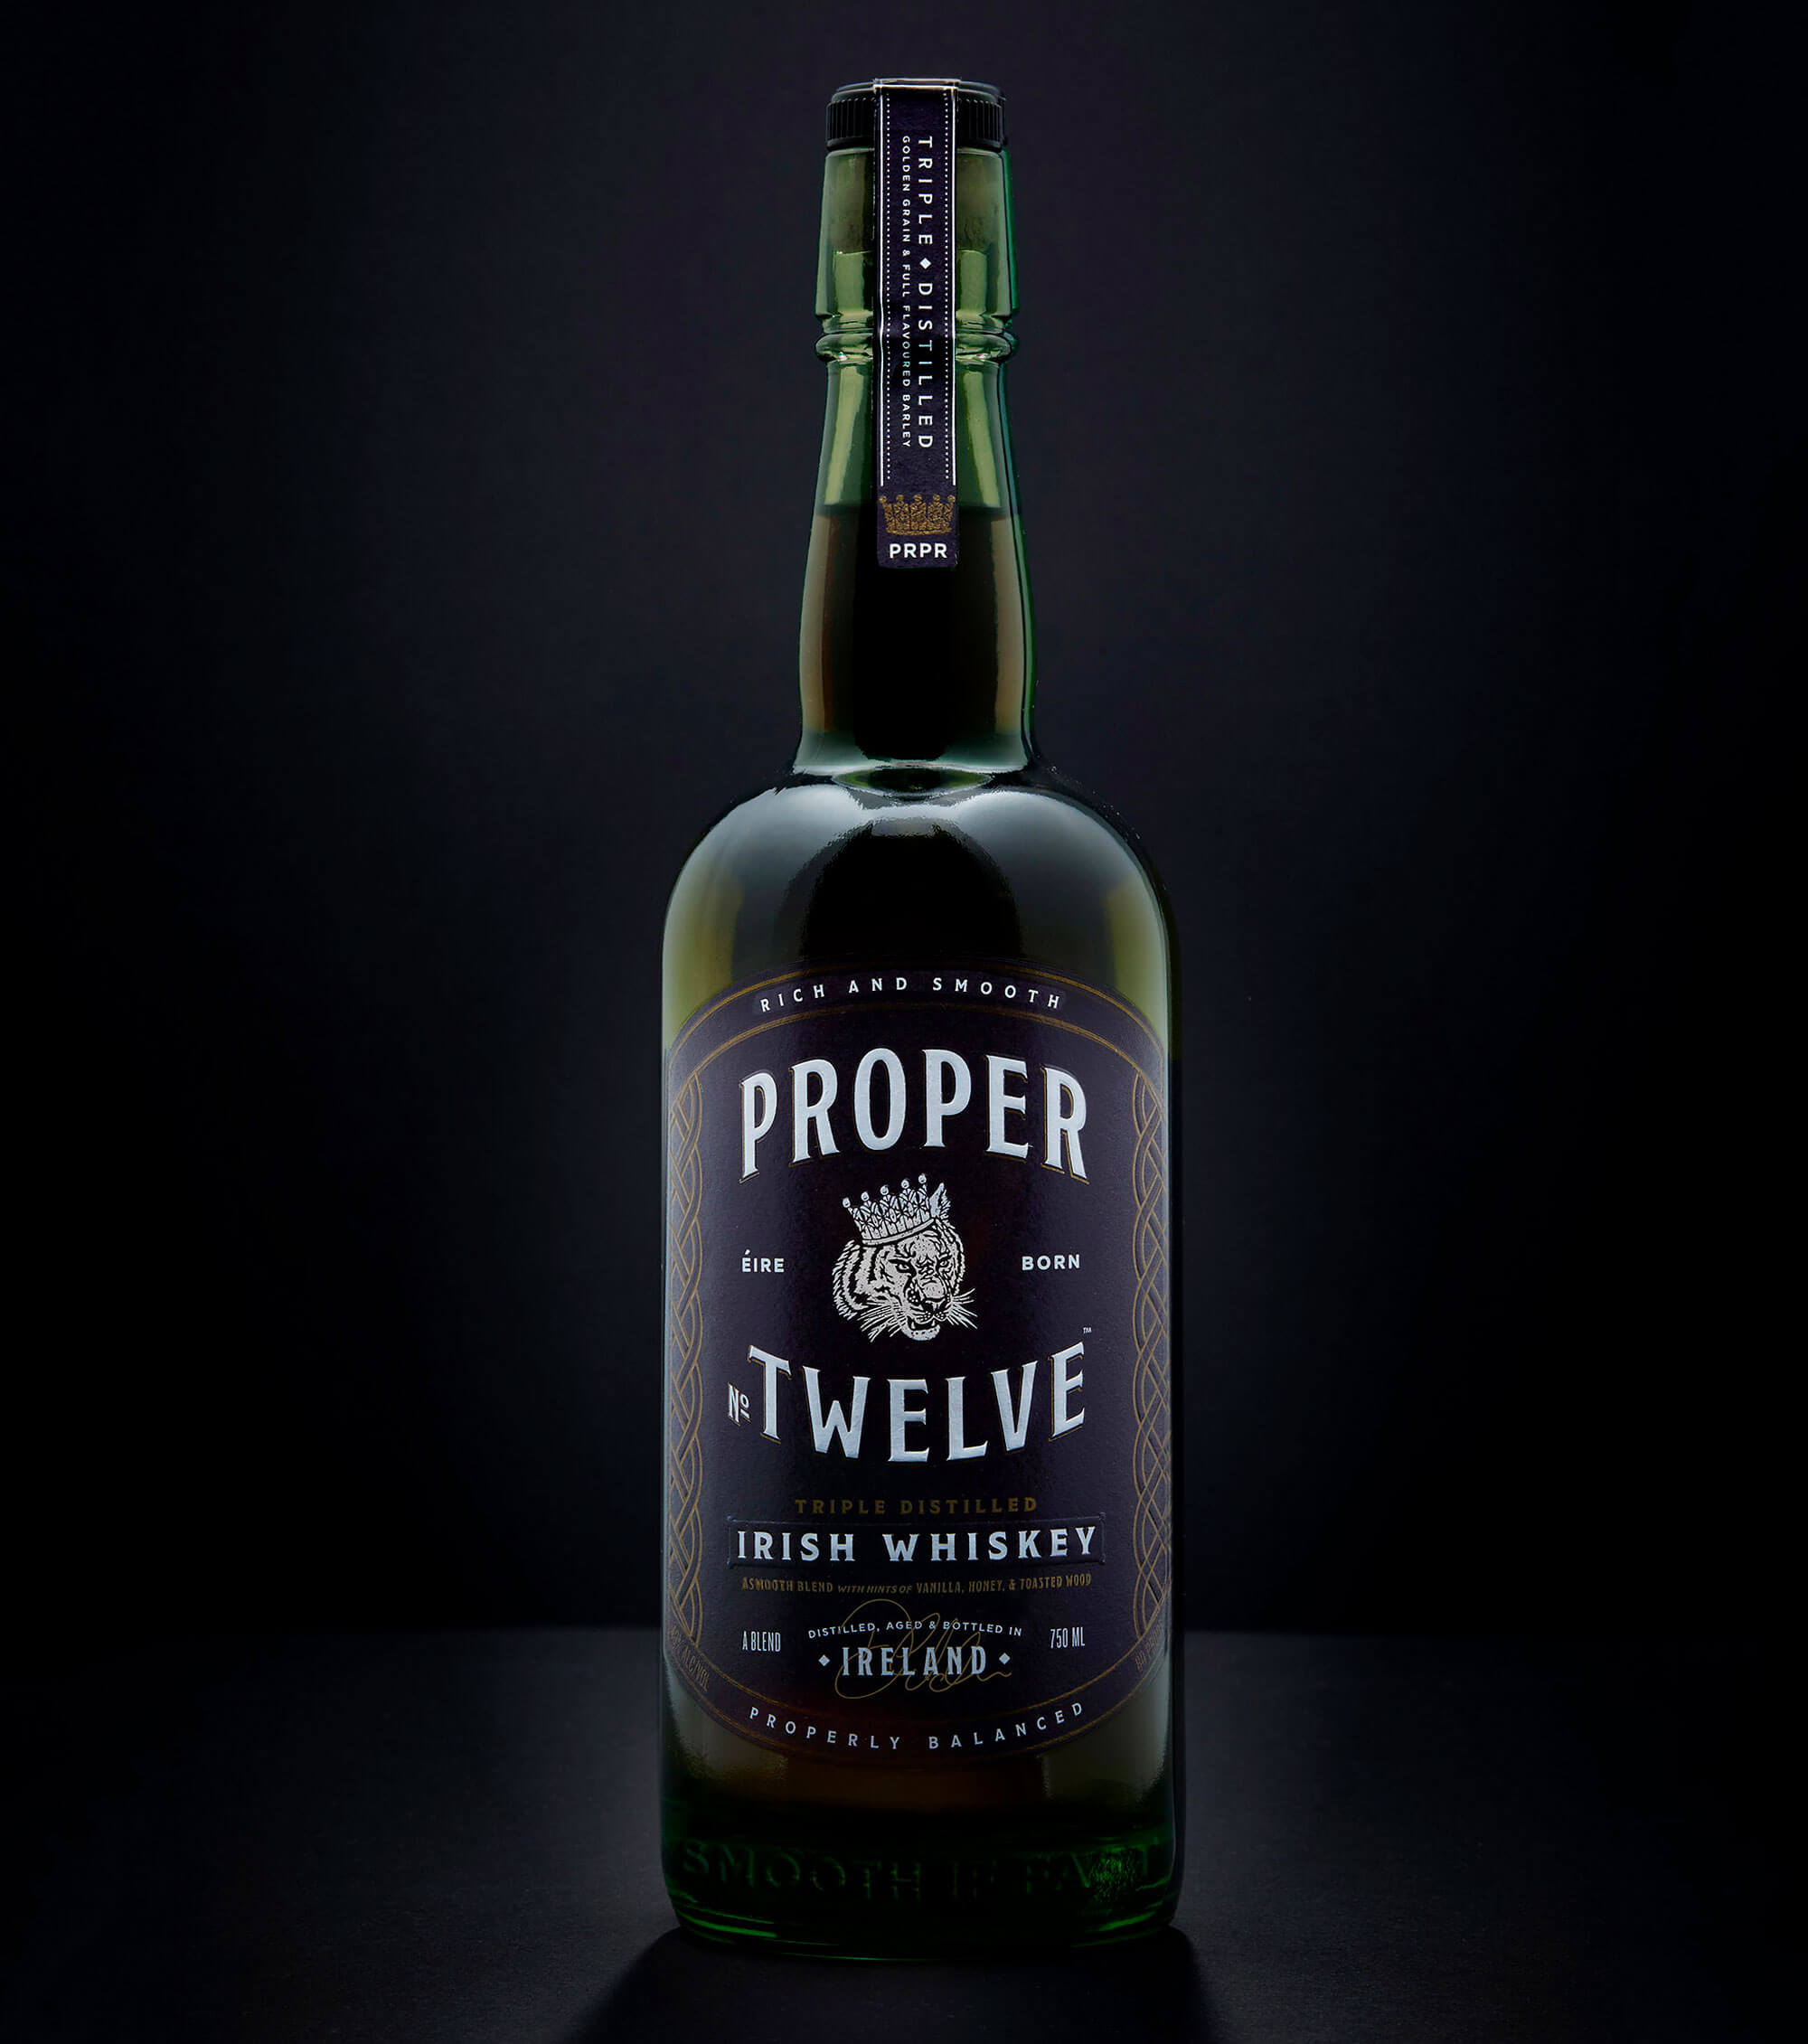 Proper No. Twelve Irish Whiskey, bottle on dark background